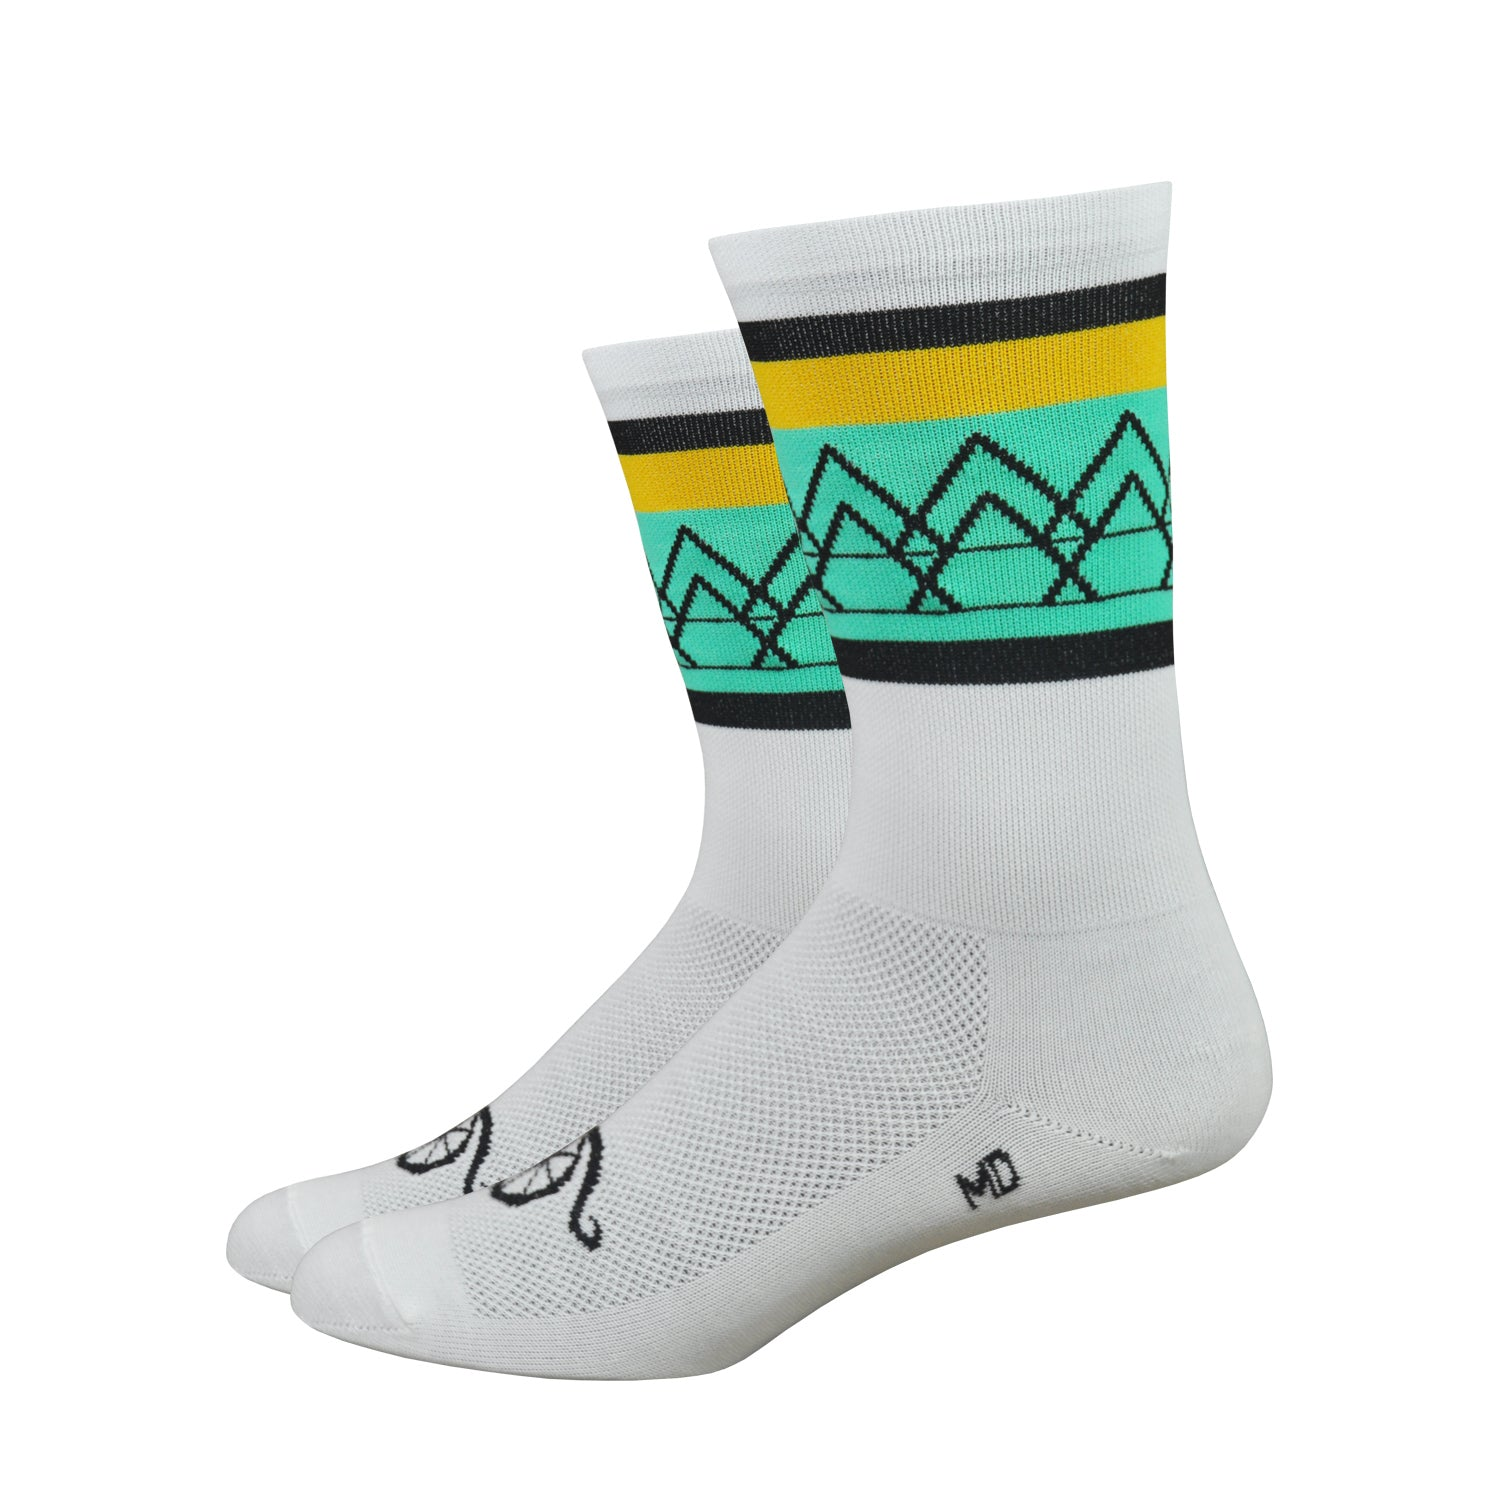 2a968b0e5d72f DeFeet International - US Made Cycling Socks